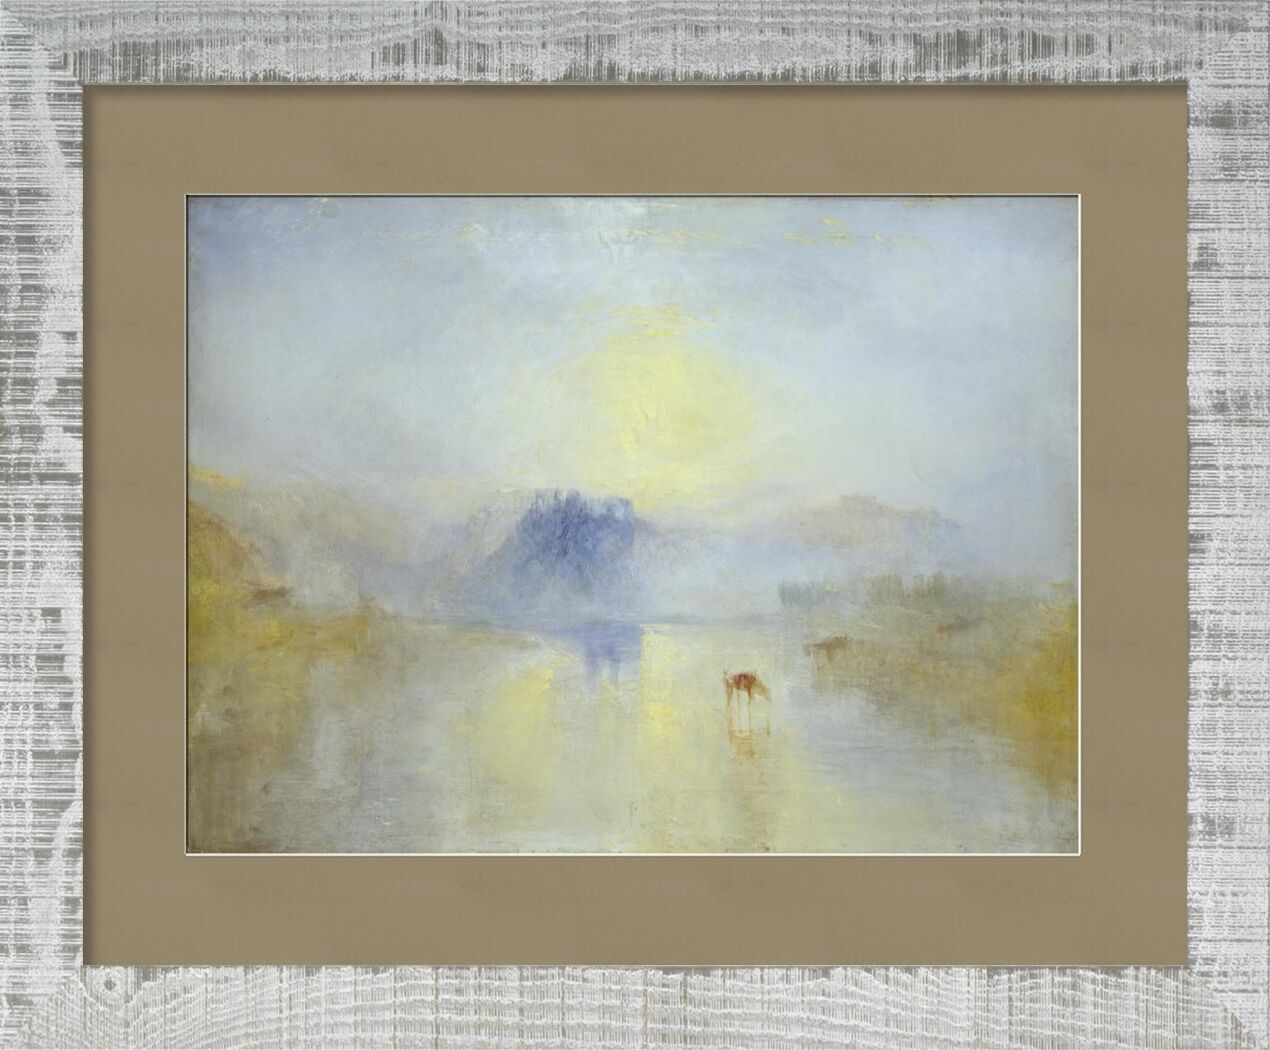 Norham Castle, Sunrise - WILLIAM TURNER 1845 from Aux Beaux-Arts, Prodi Art, chateau, horses, england, WILLIAM TURNER, painting, Sunrise, Norham